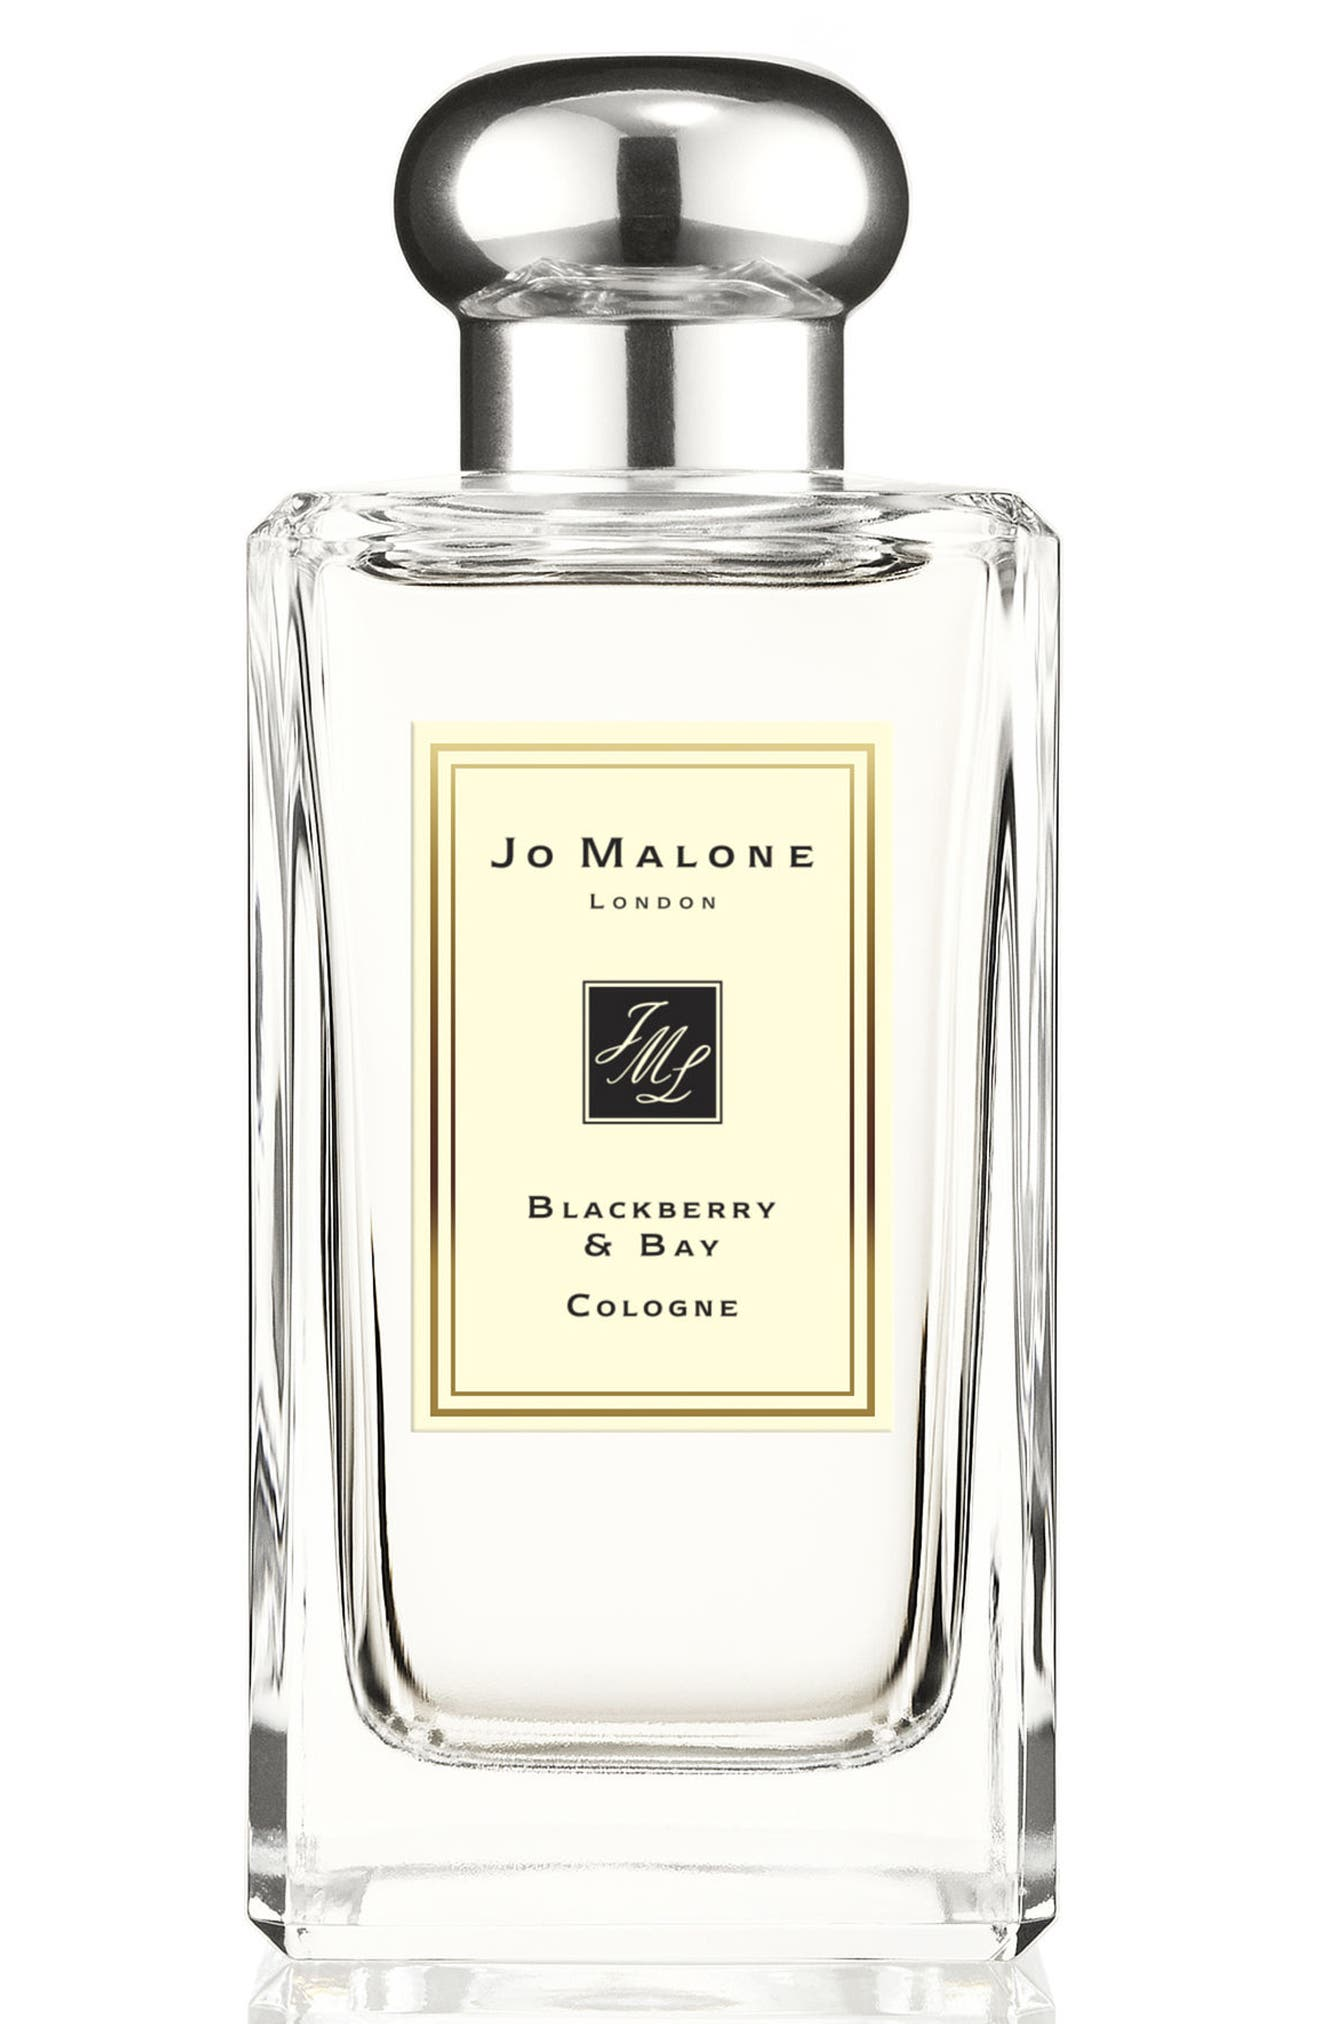 Jo Malone Holiday Gifts  Nordstrom